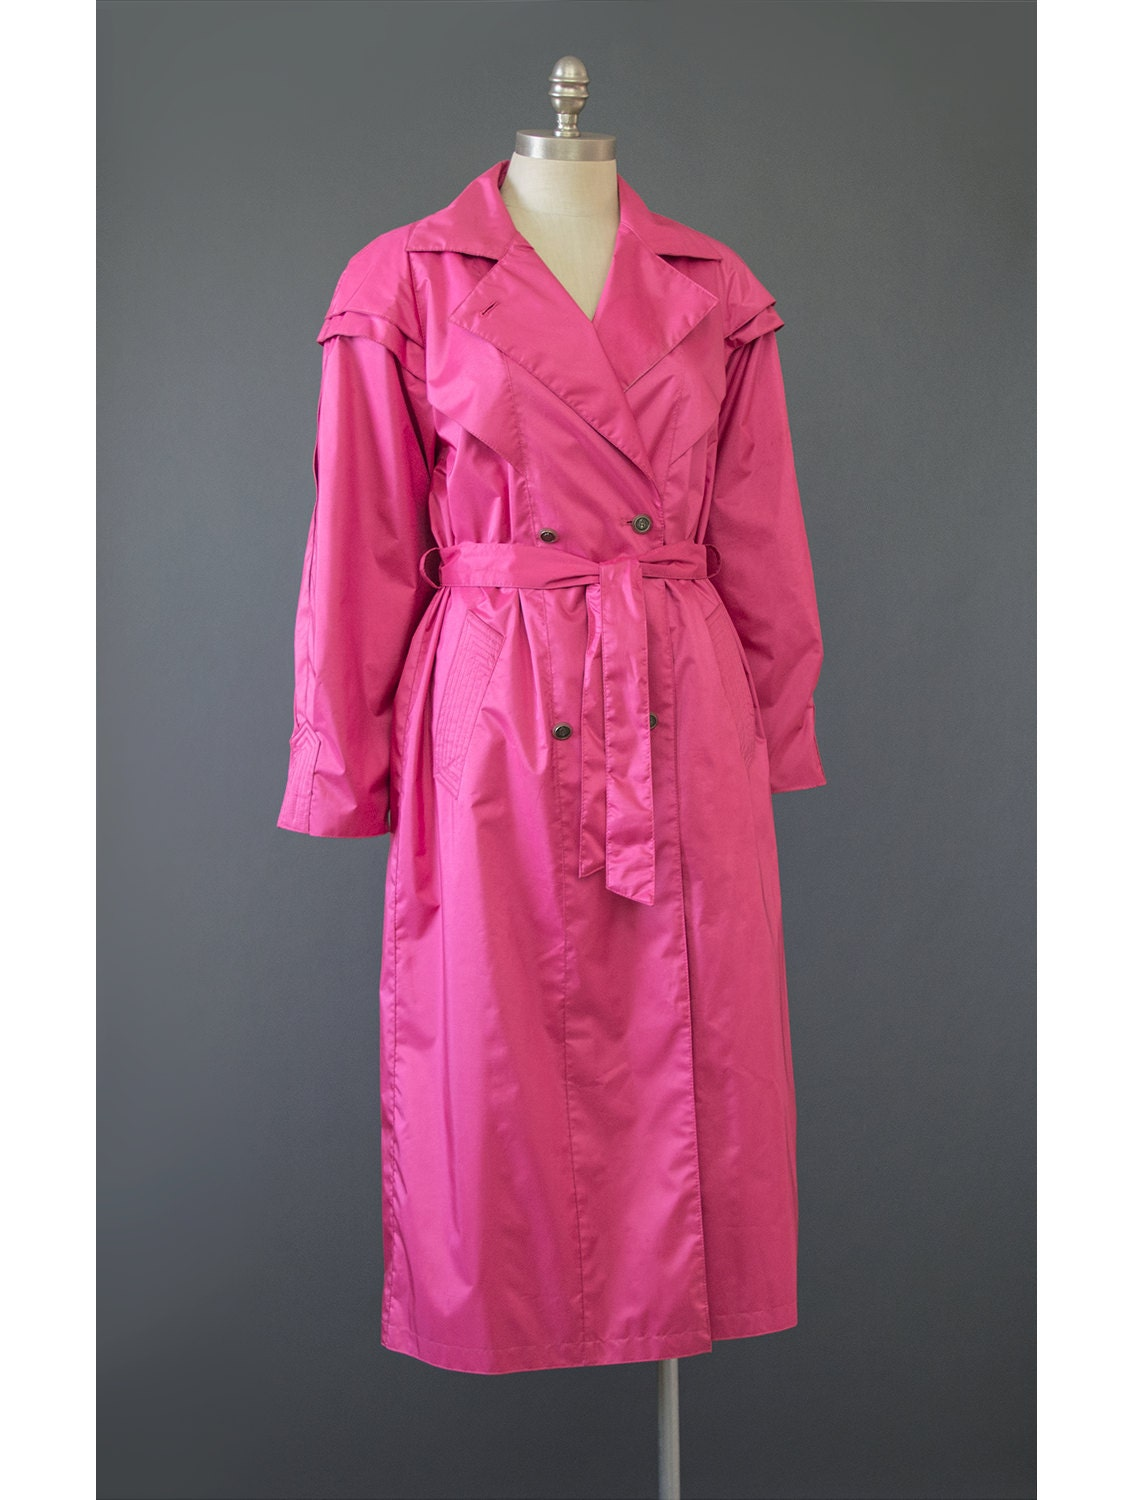 Falling at or just above the knee, modern trench coat designs may feature removable lining, rendering the coat usable for both rain and cold weather. You may also find trench coats made of non-traditional materials such as denim, wool, or cotton blends, all of which pair well with skirts or leggings.